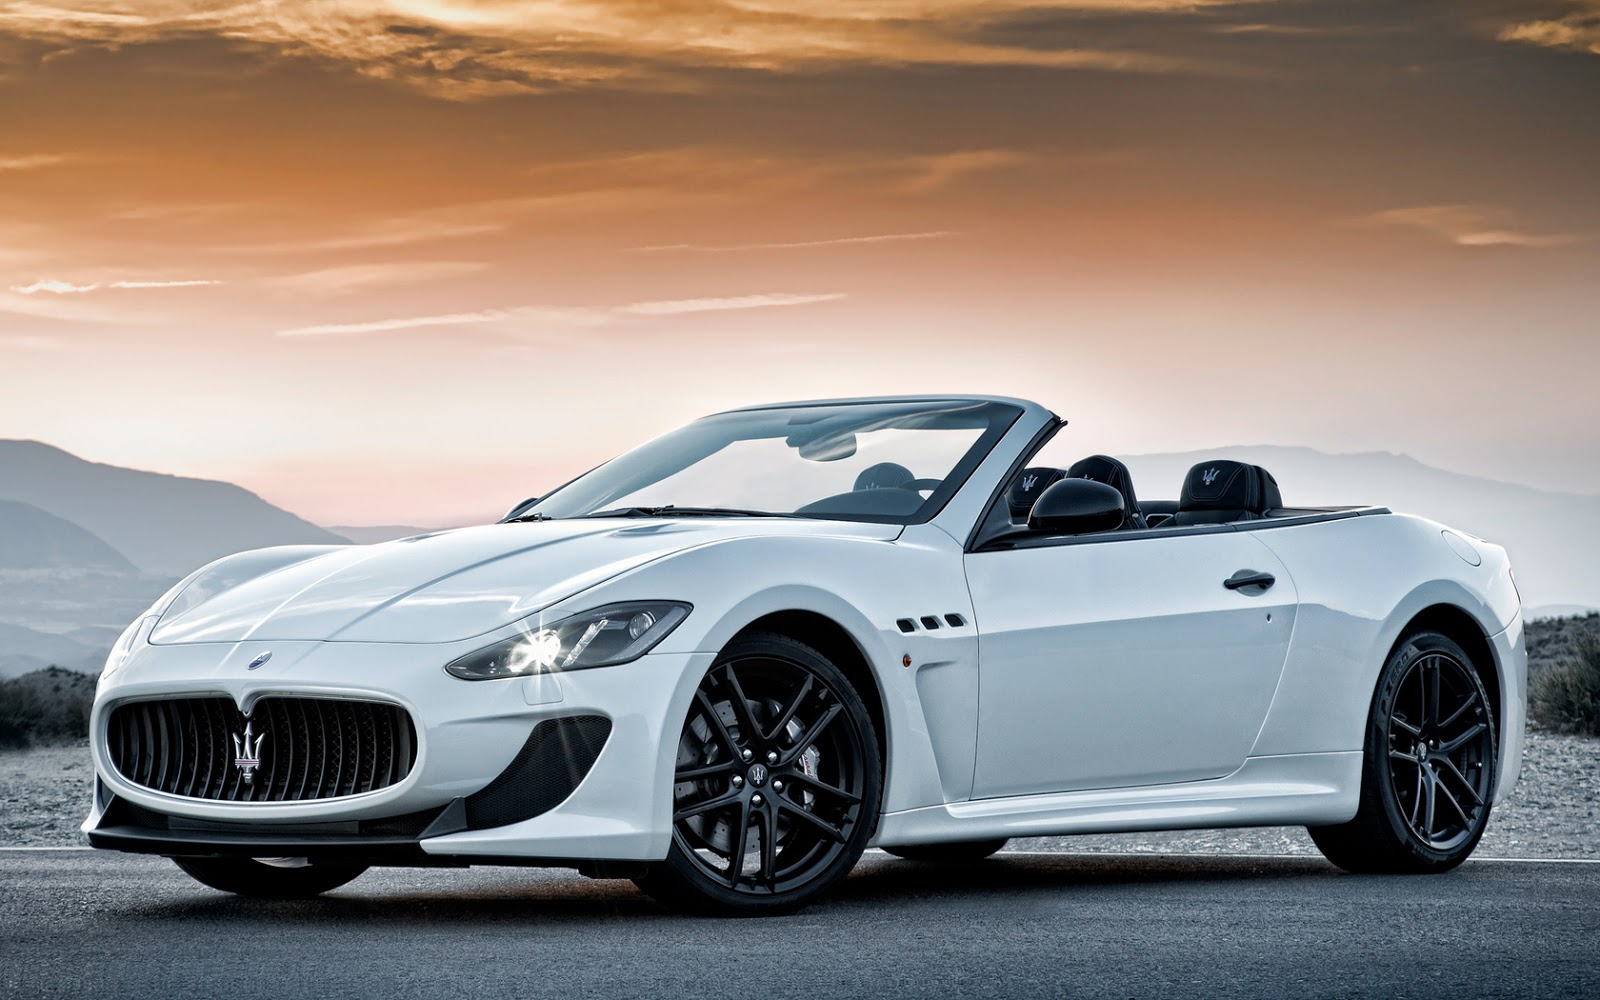 maserati granturismo wallpaper hd cars cars wallpapers hd. Black Bedroom Furniture Sets. Home Design Ideas